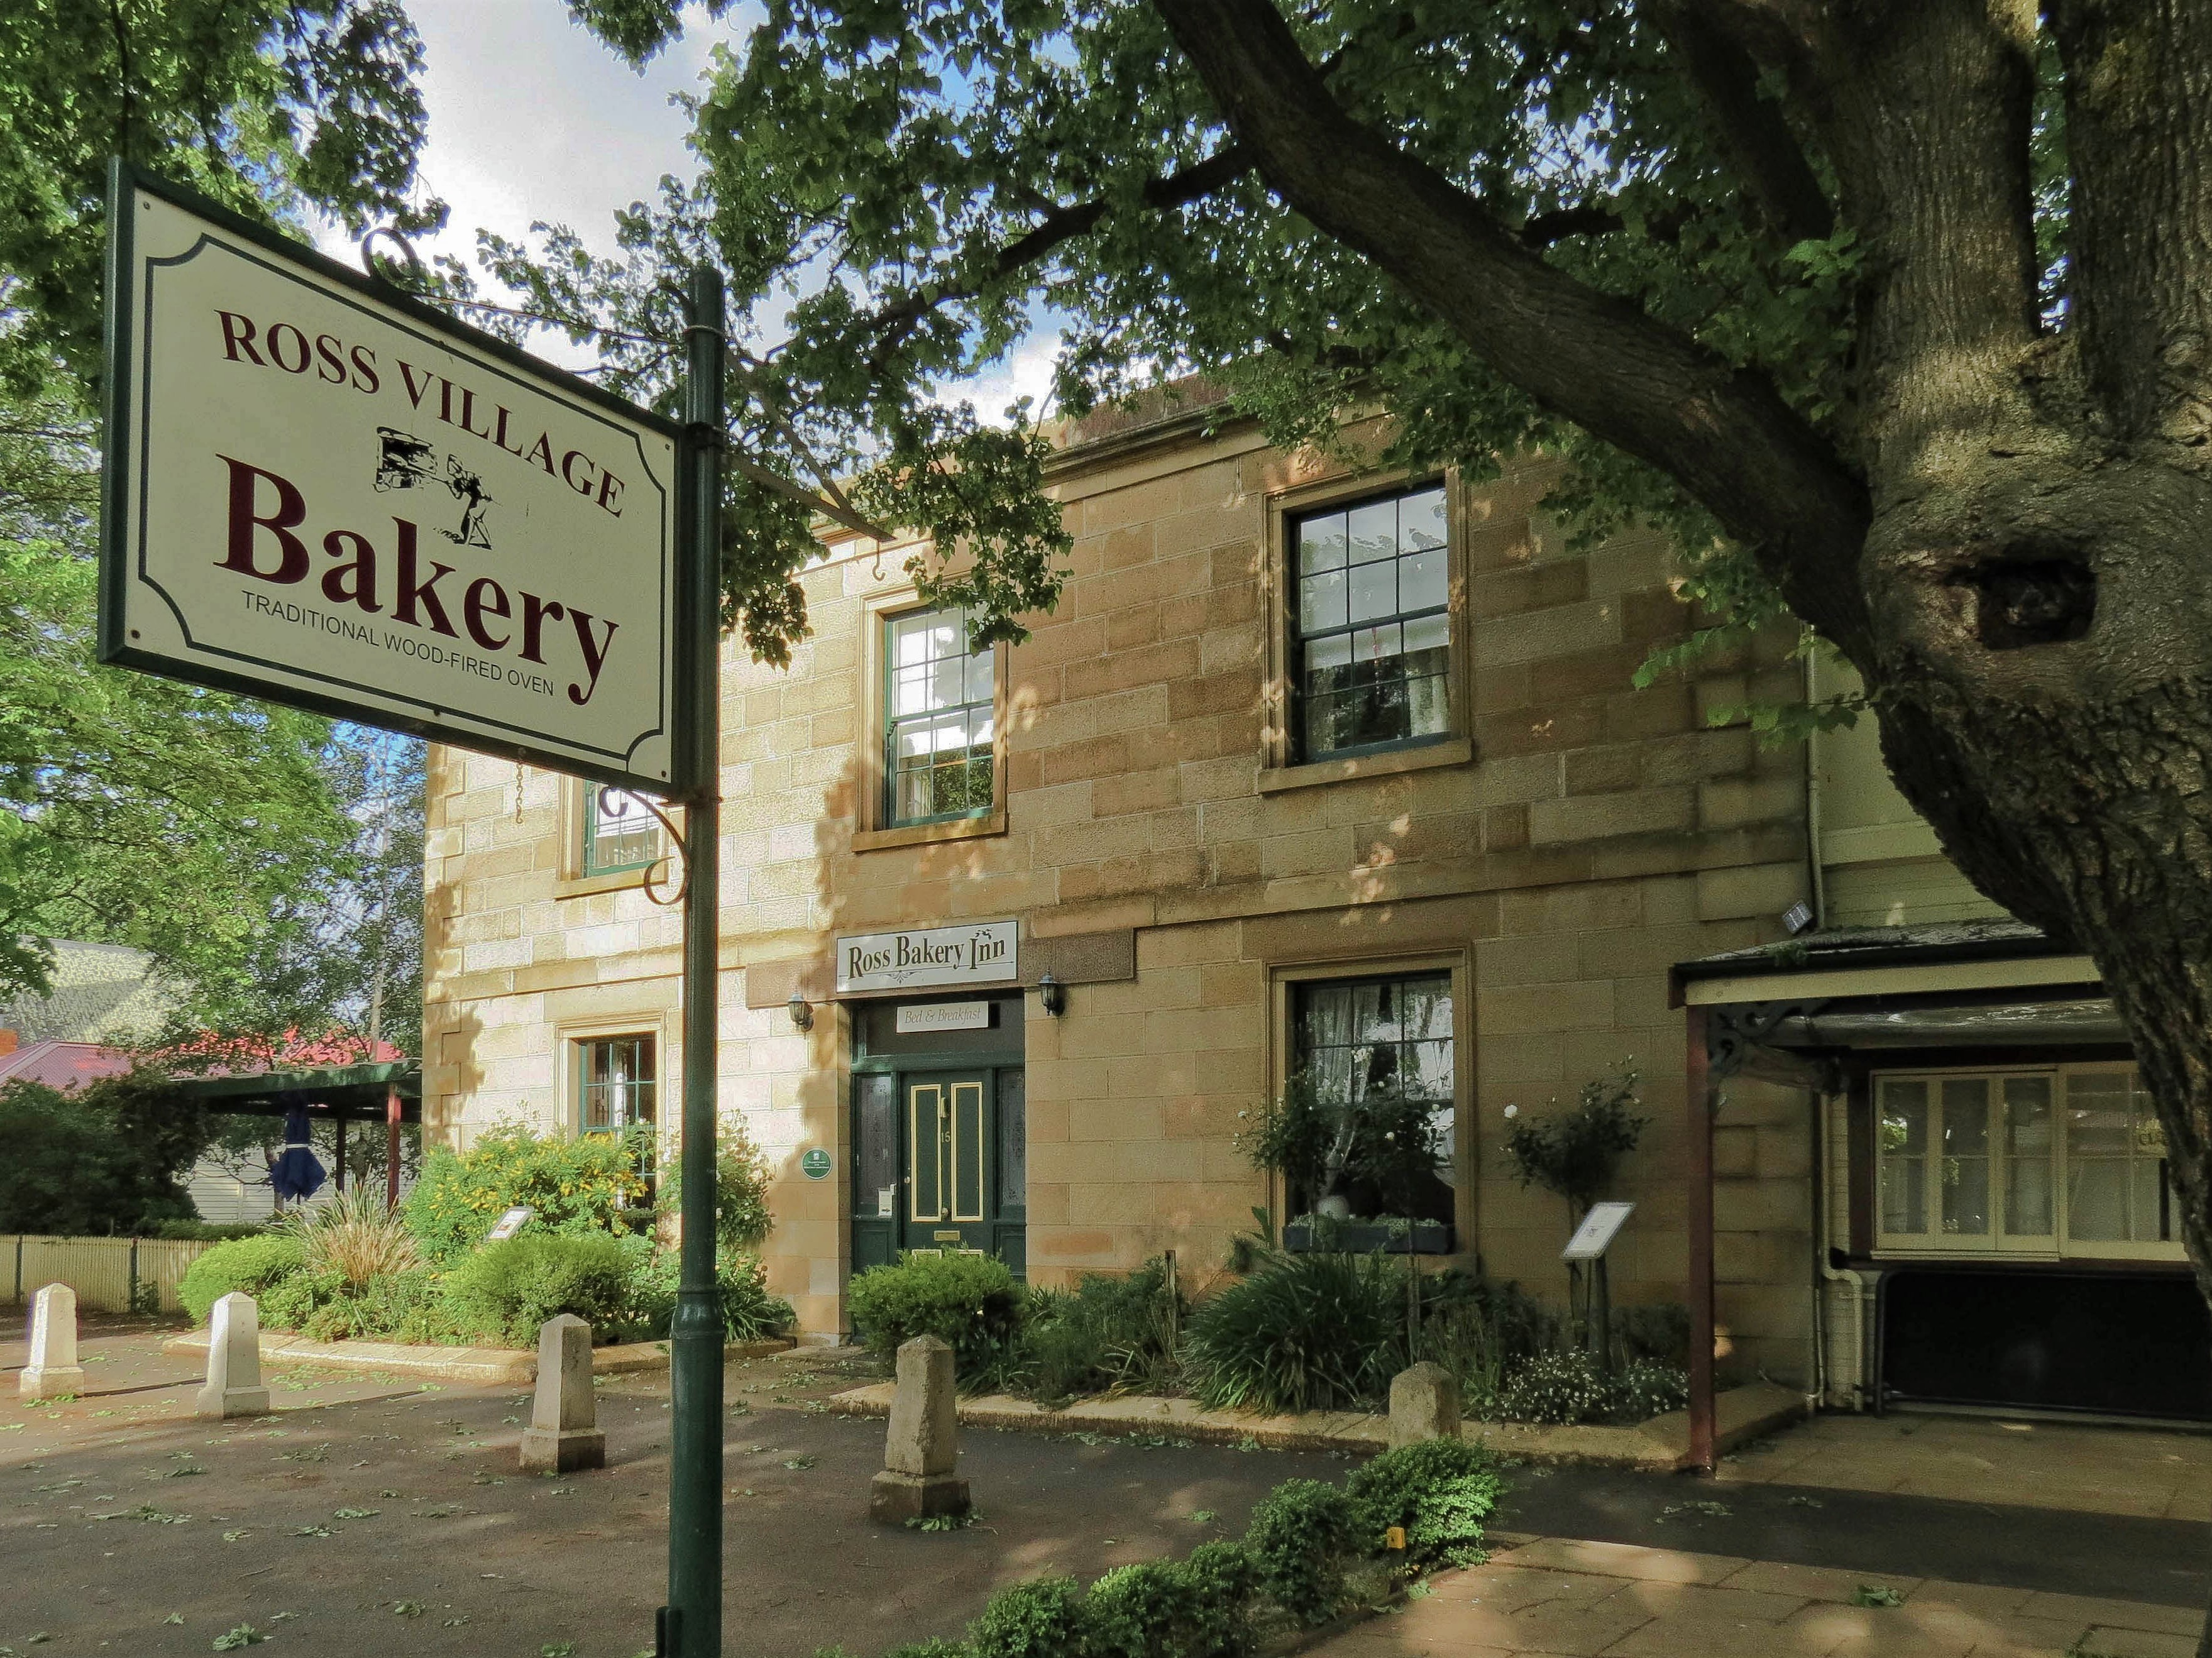 Ross Bakery Inn, Ross, credit - Tourism Tasmania & Kathryn Leahy